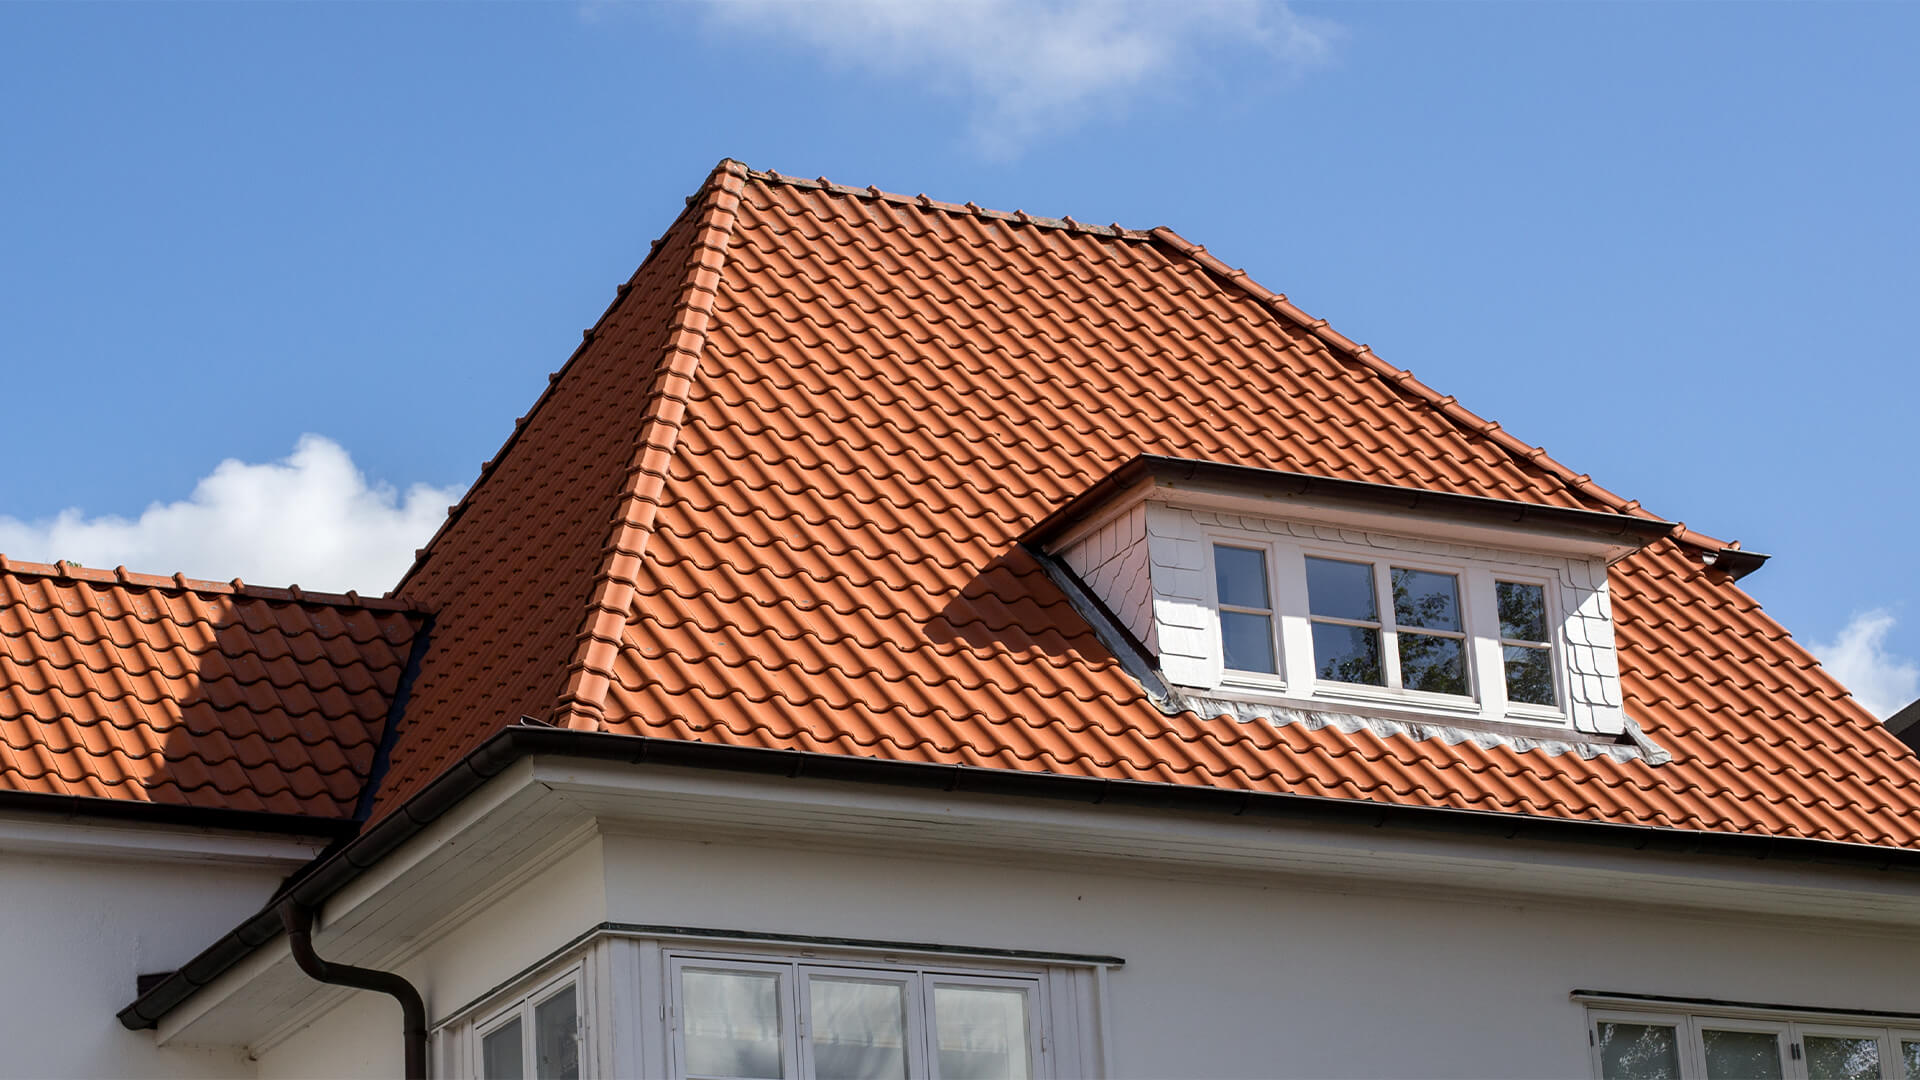 The Importance of a Good Quality Roof Over Your Home - Build Magazine